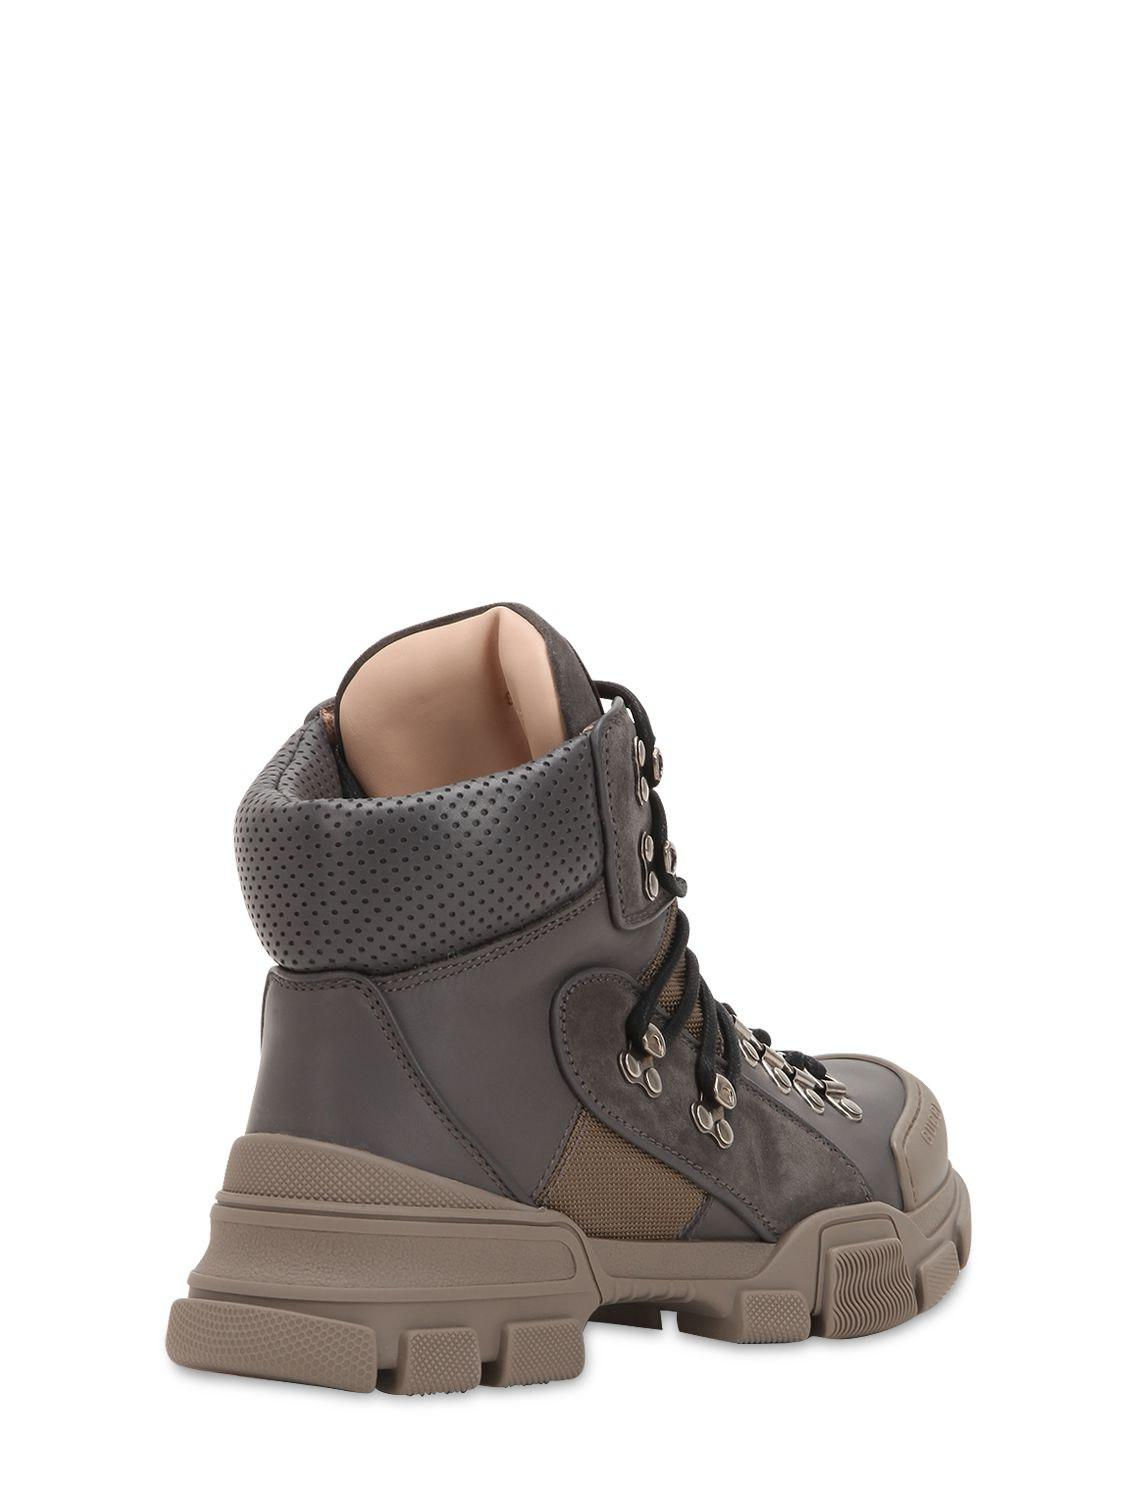 a66401df5cf Lyst - Gucci 40mm Flashtrek Leather Hiking Boots in Gray